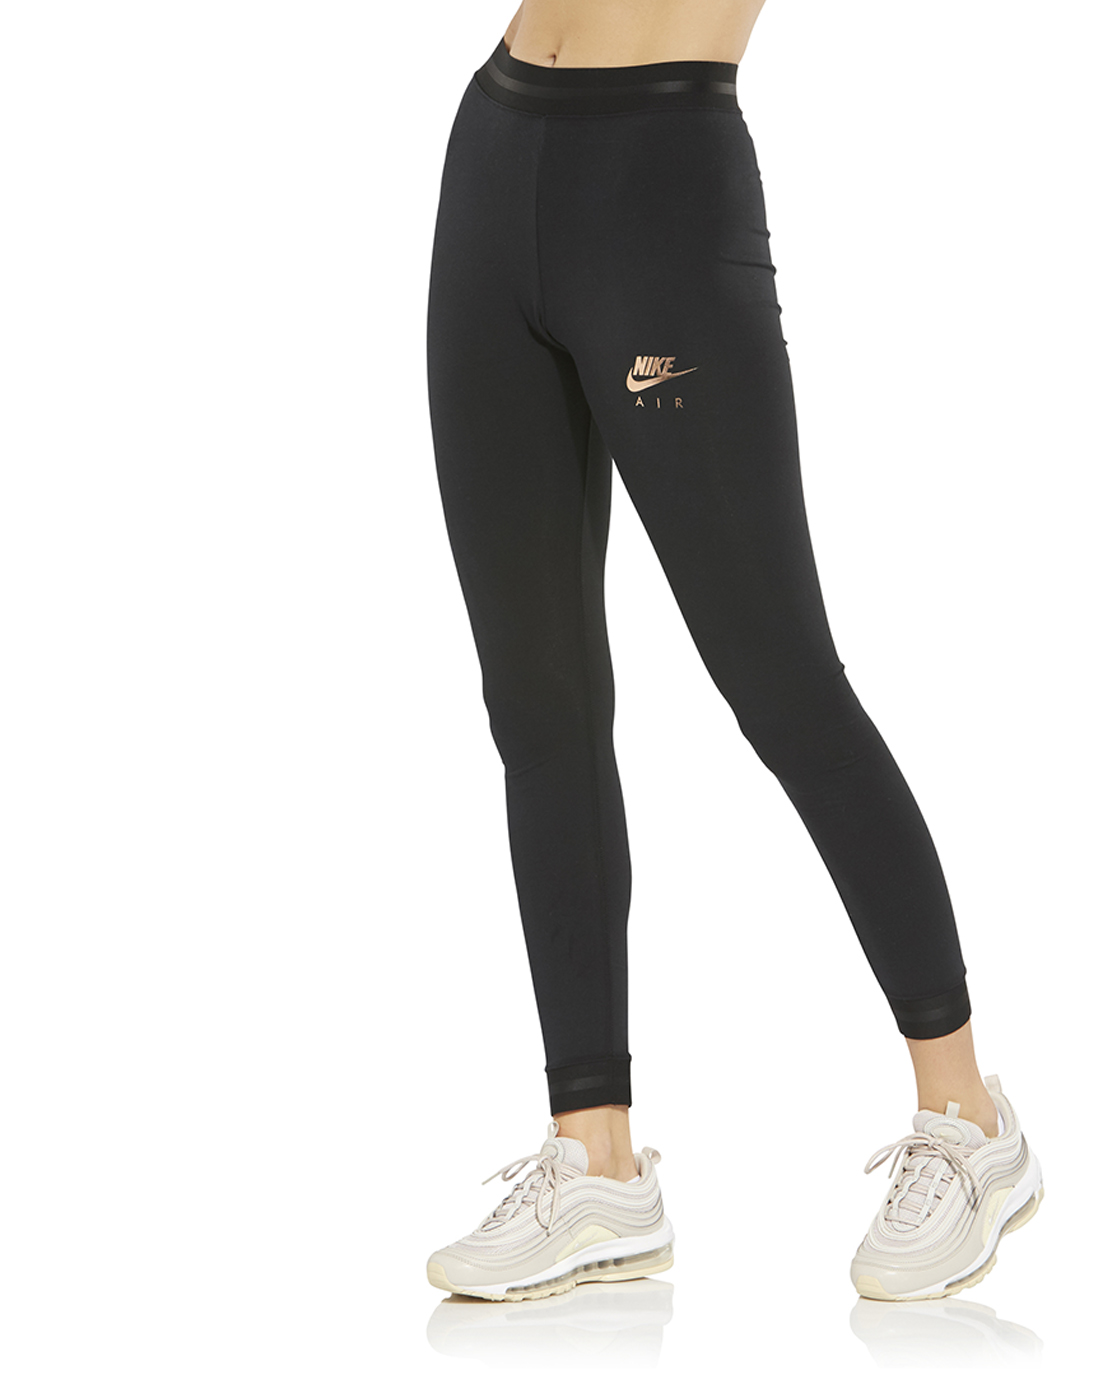 e7d221b0d55ef Women's Black Nike Air Leggings | Life Style Sports